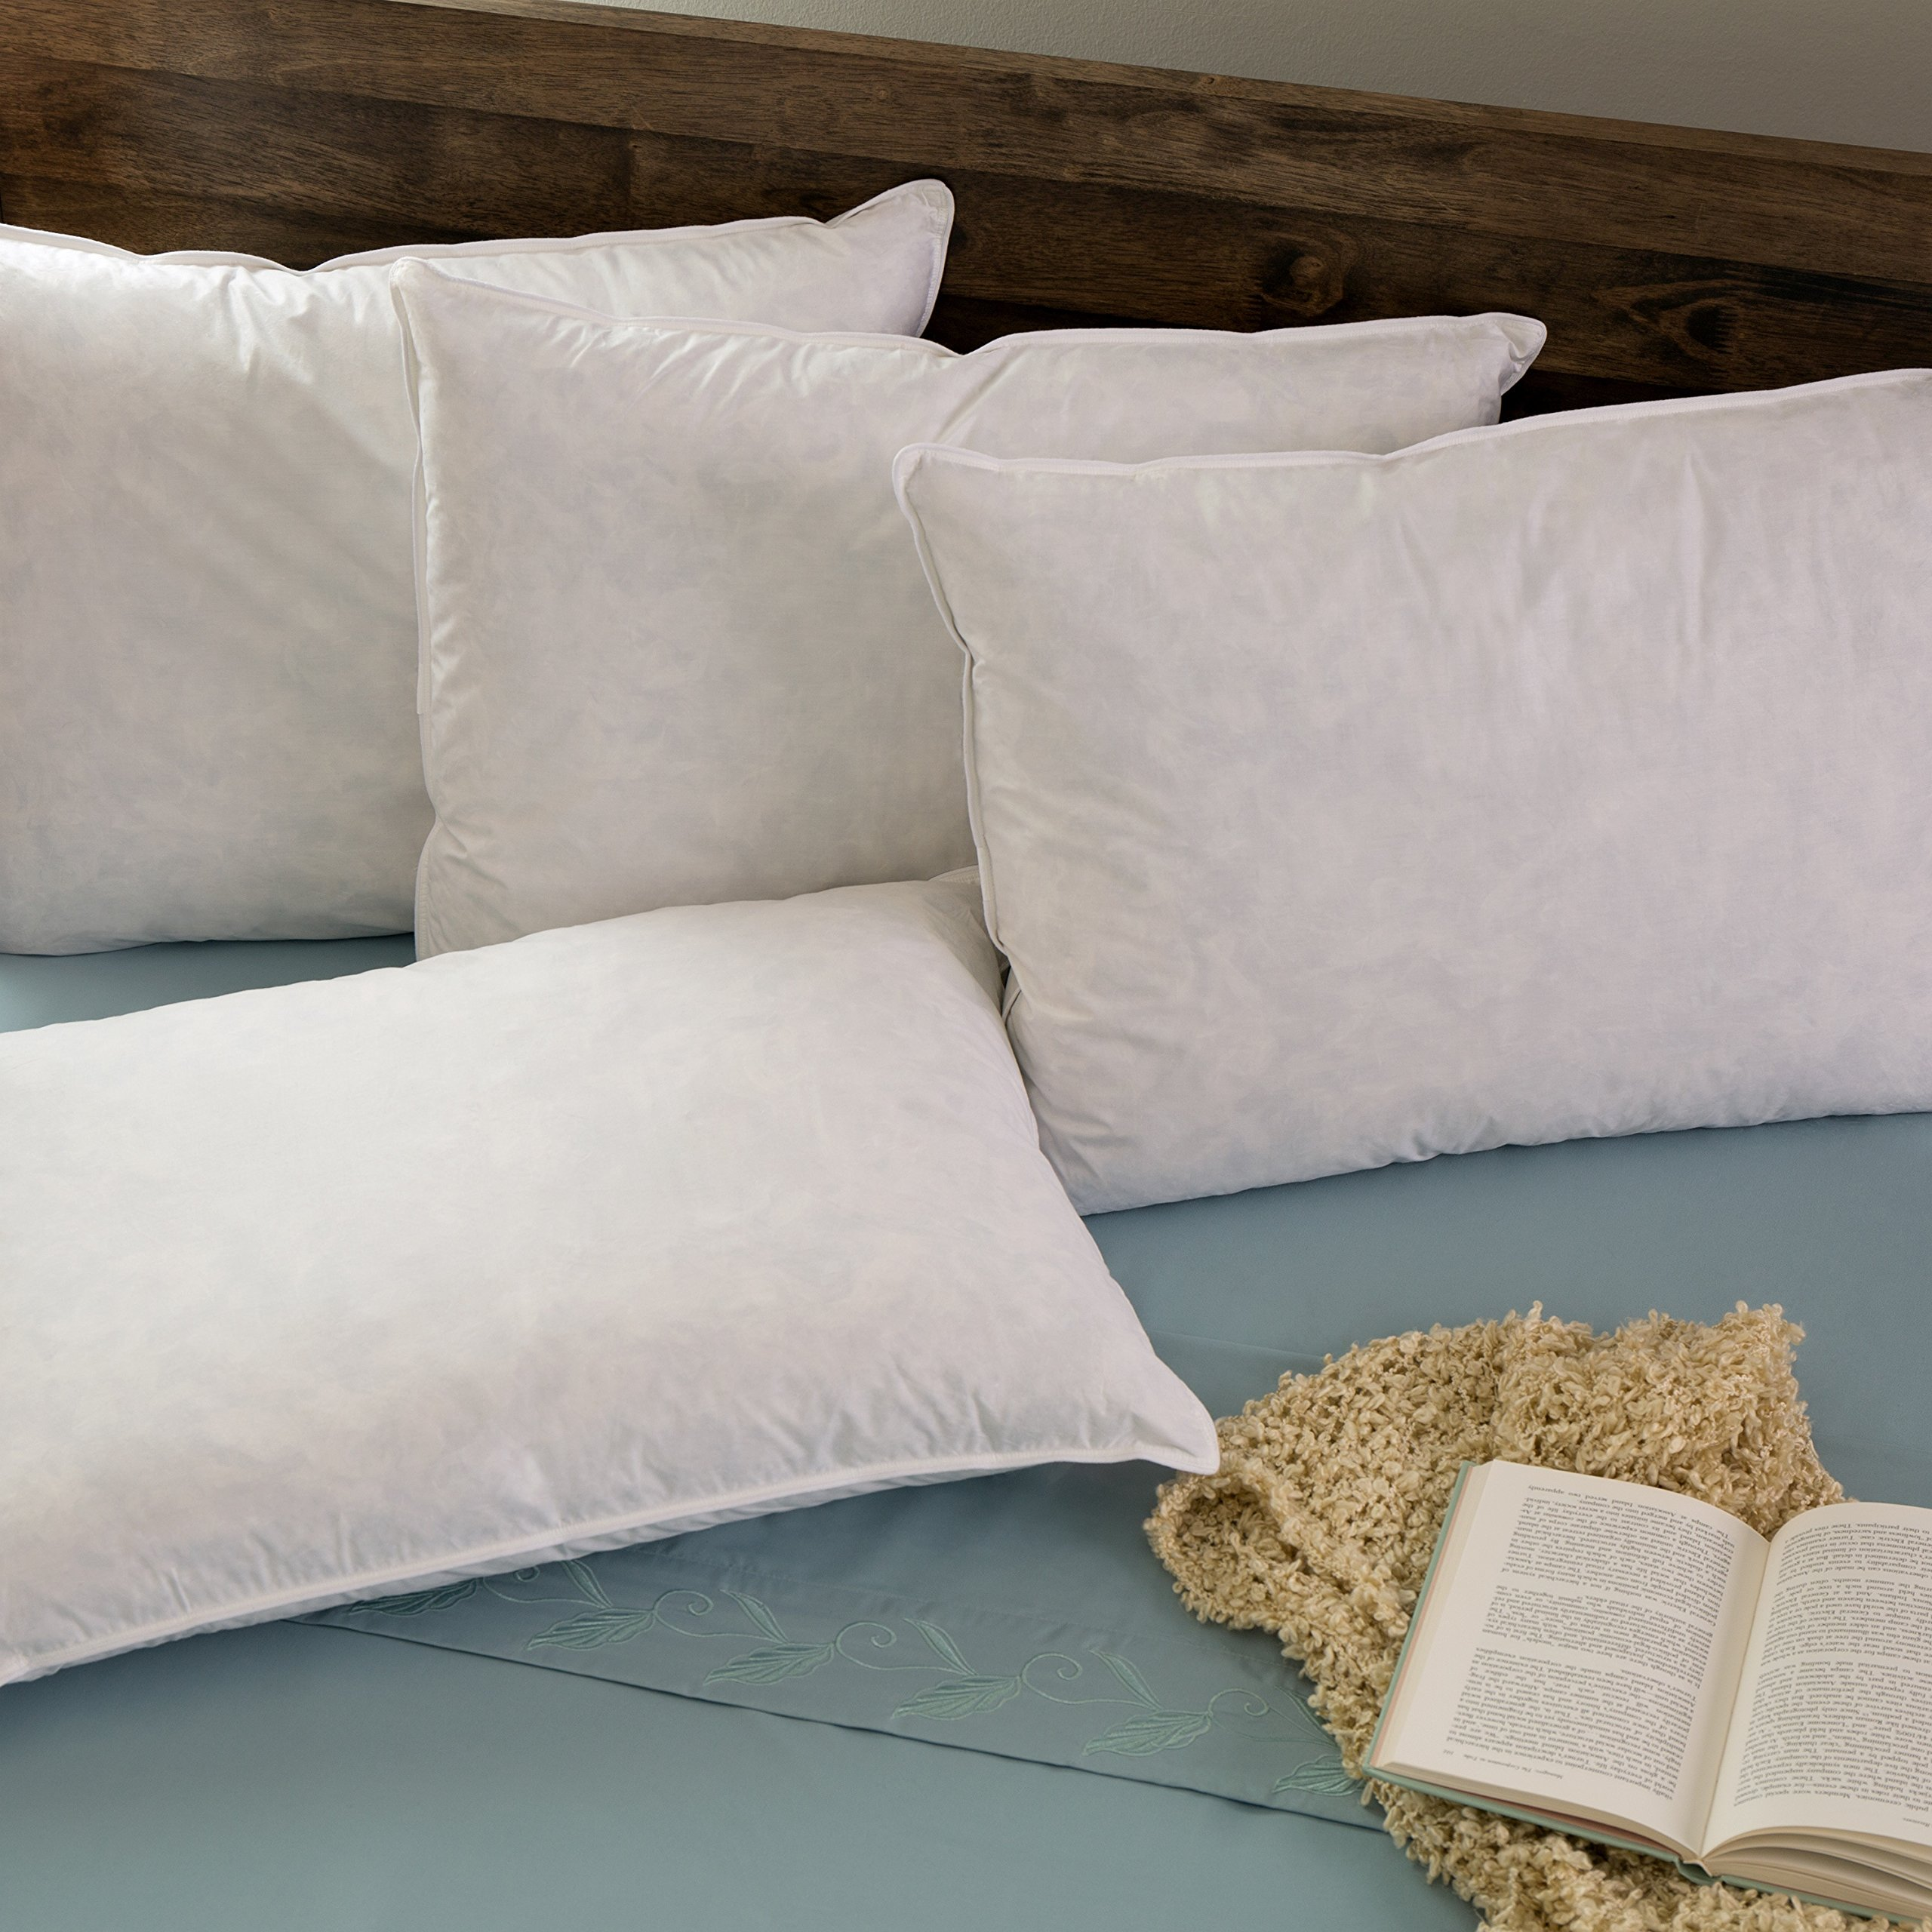 Hotel Madison TruLoft Medium Firm Feather Pillow (Set of 4) King by Hotel Madison (Image #2)